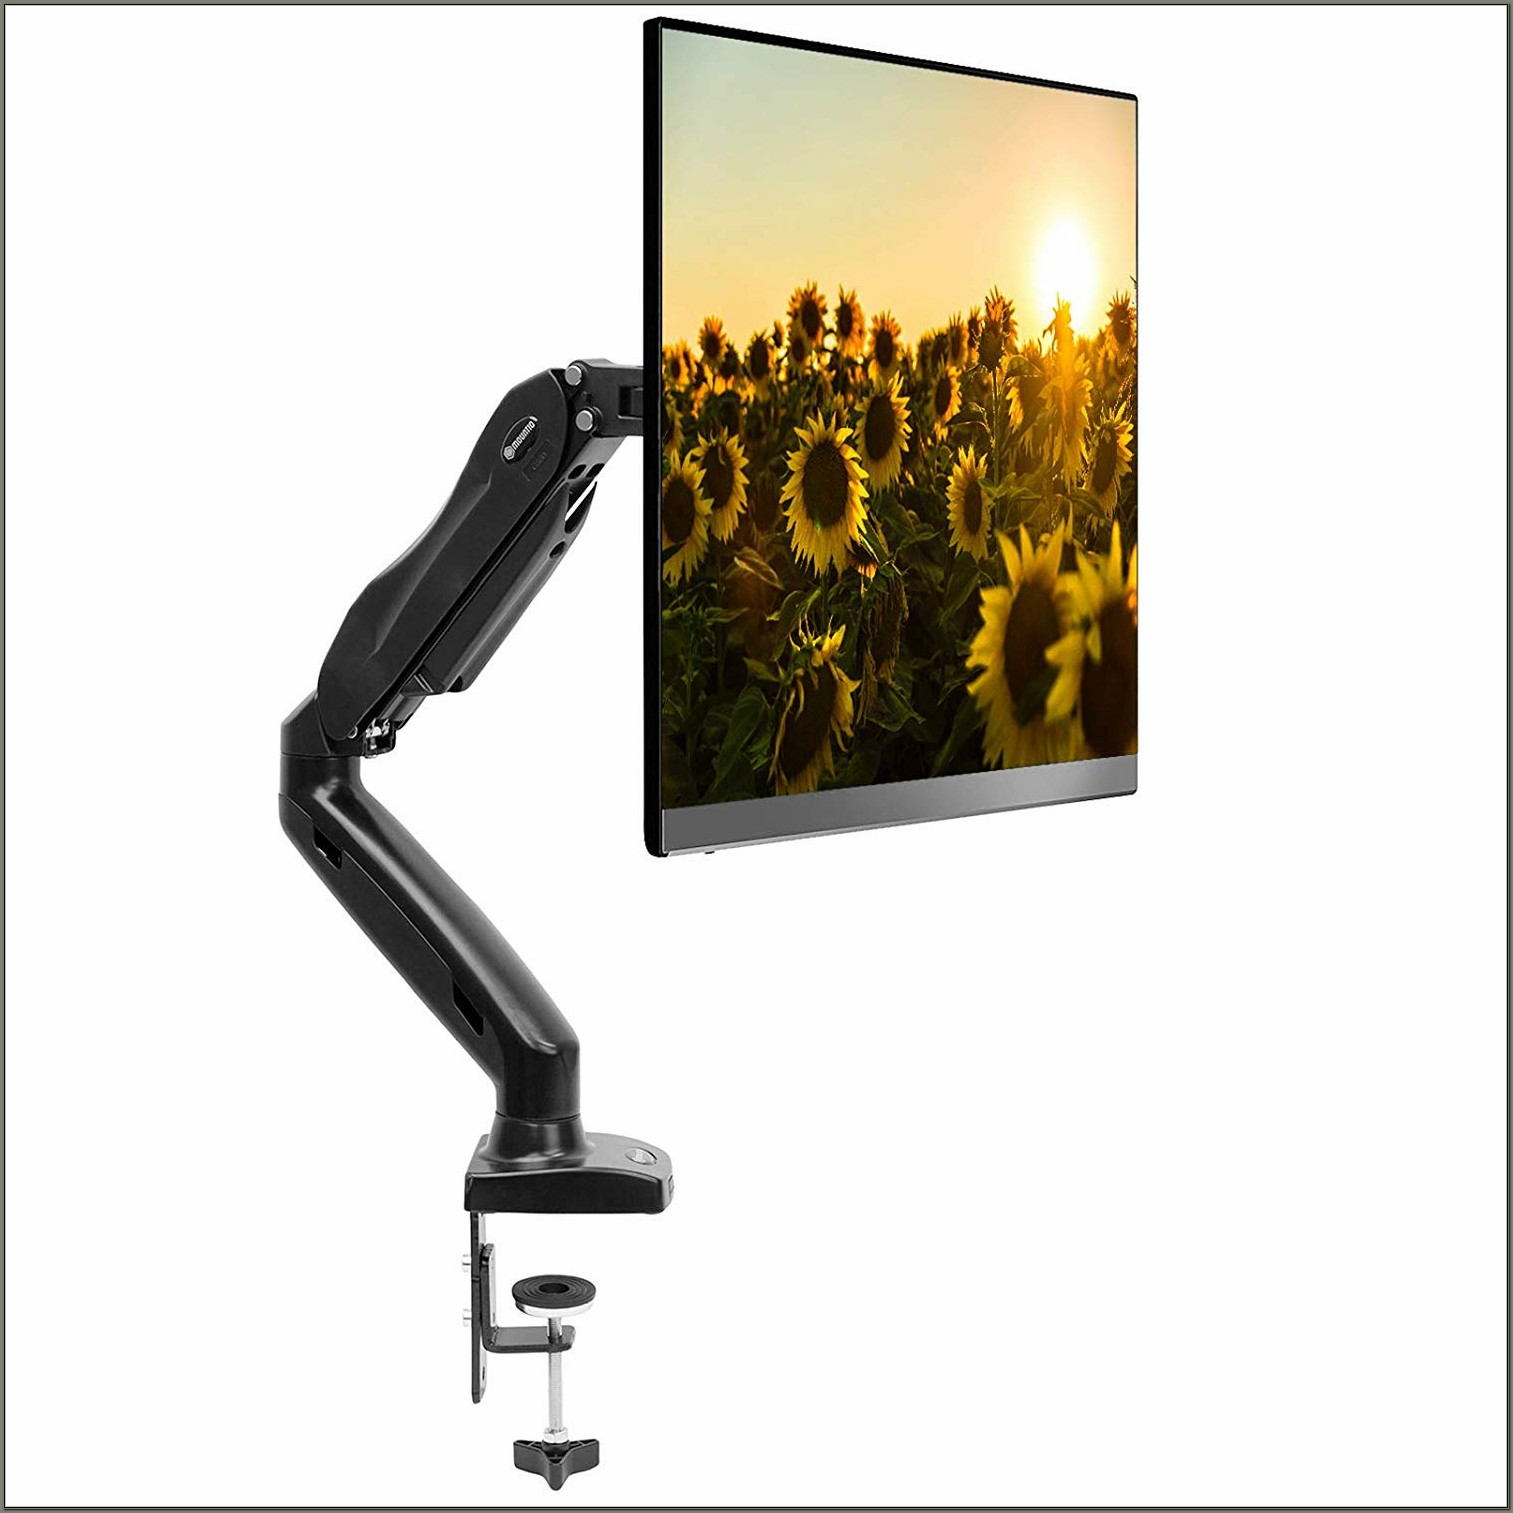 Monitor Arm Desk Mount